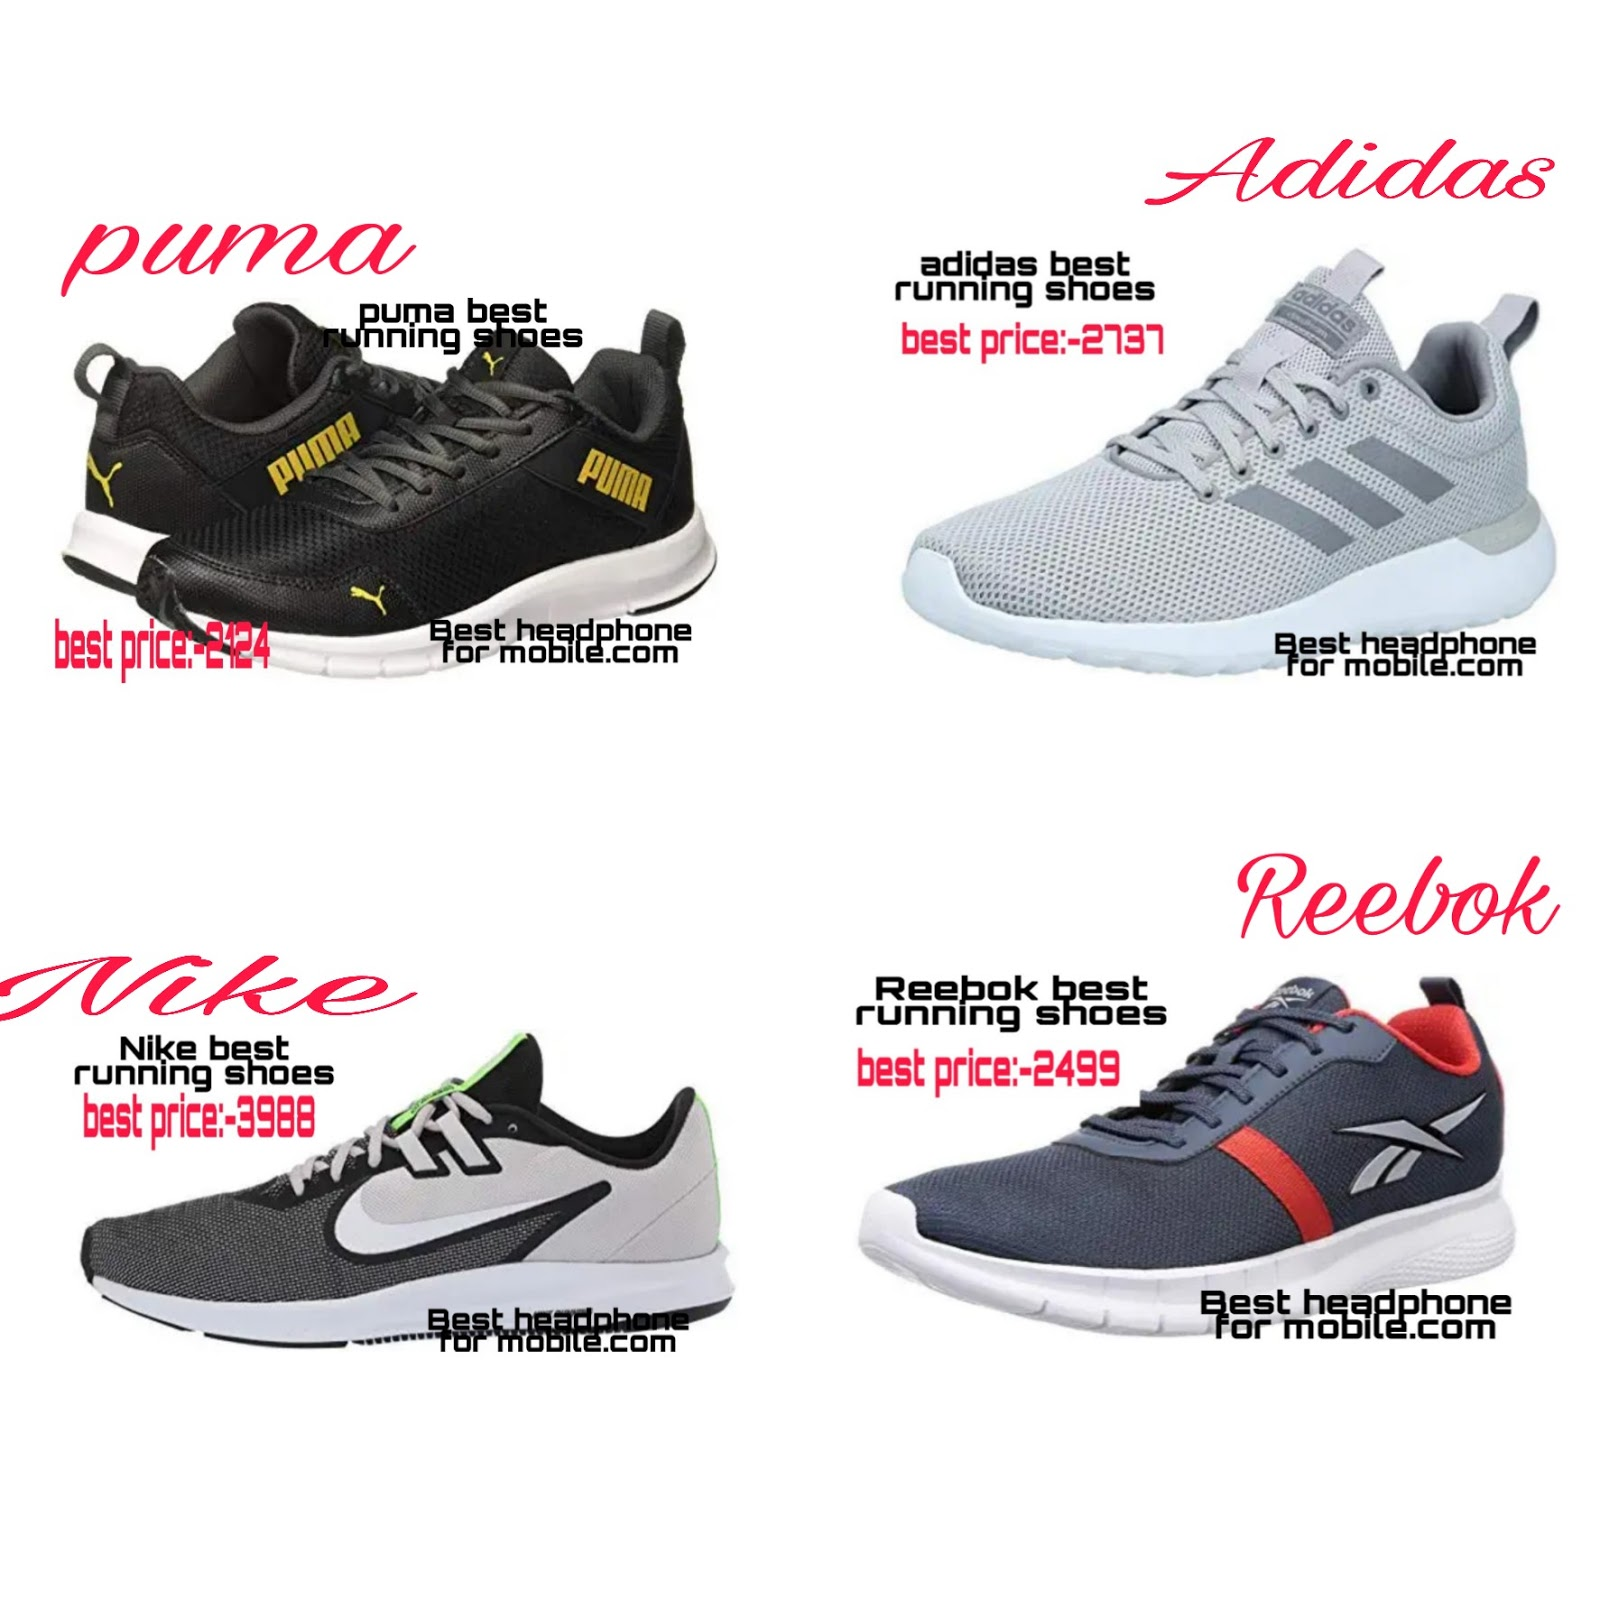 Best Training Shoes 2021 top 4 best puma adidas Nike Reebok running shoes(2020 2021)   This